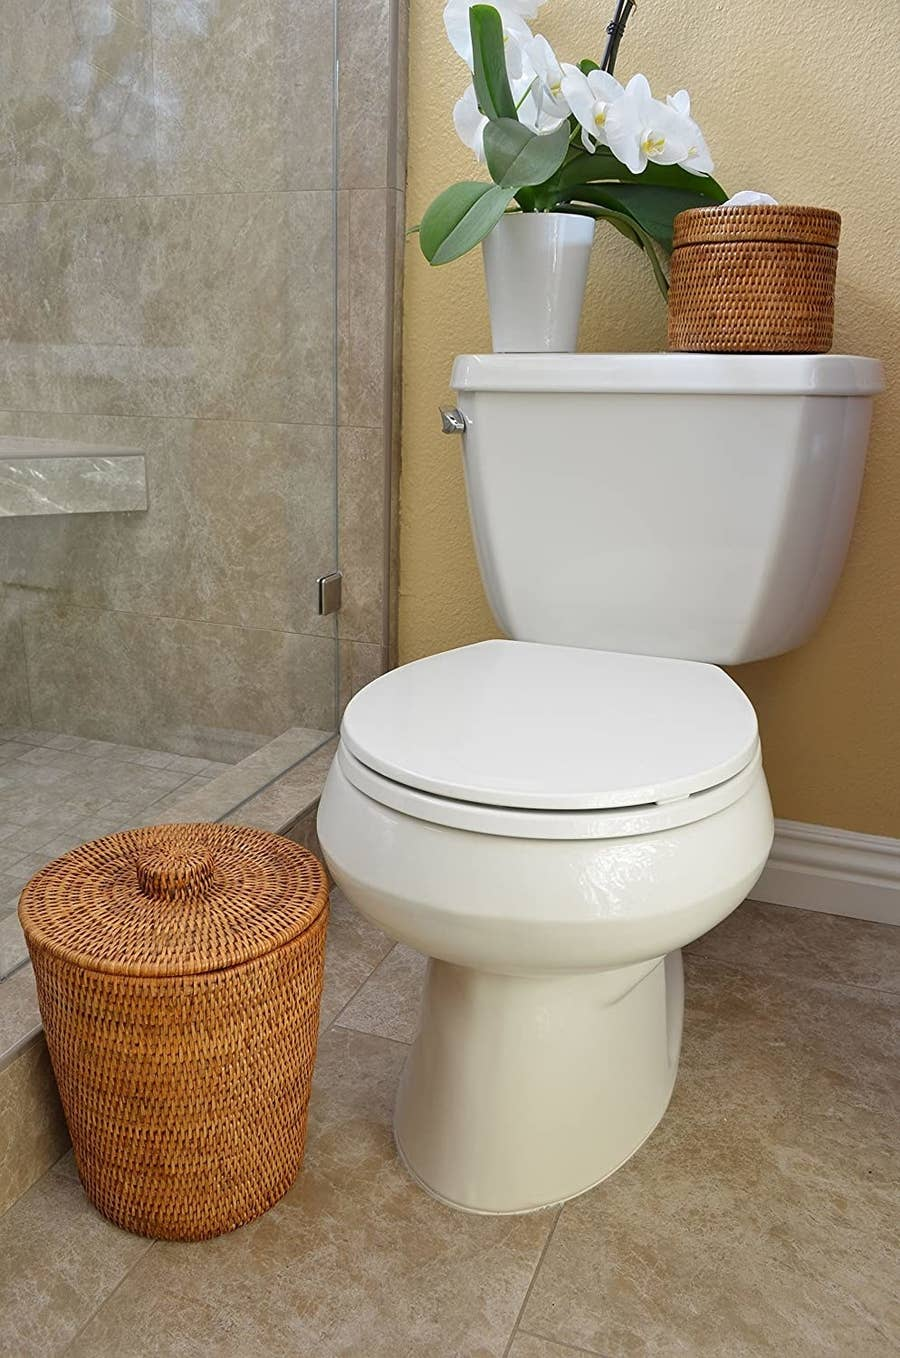 27 Garbage Cans That People Actually, Bathroom Garbage Can With Lid